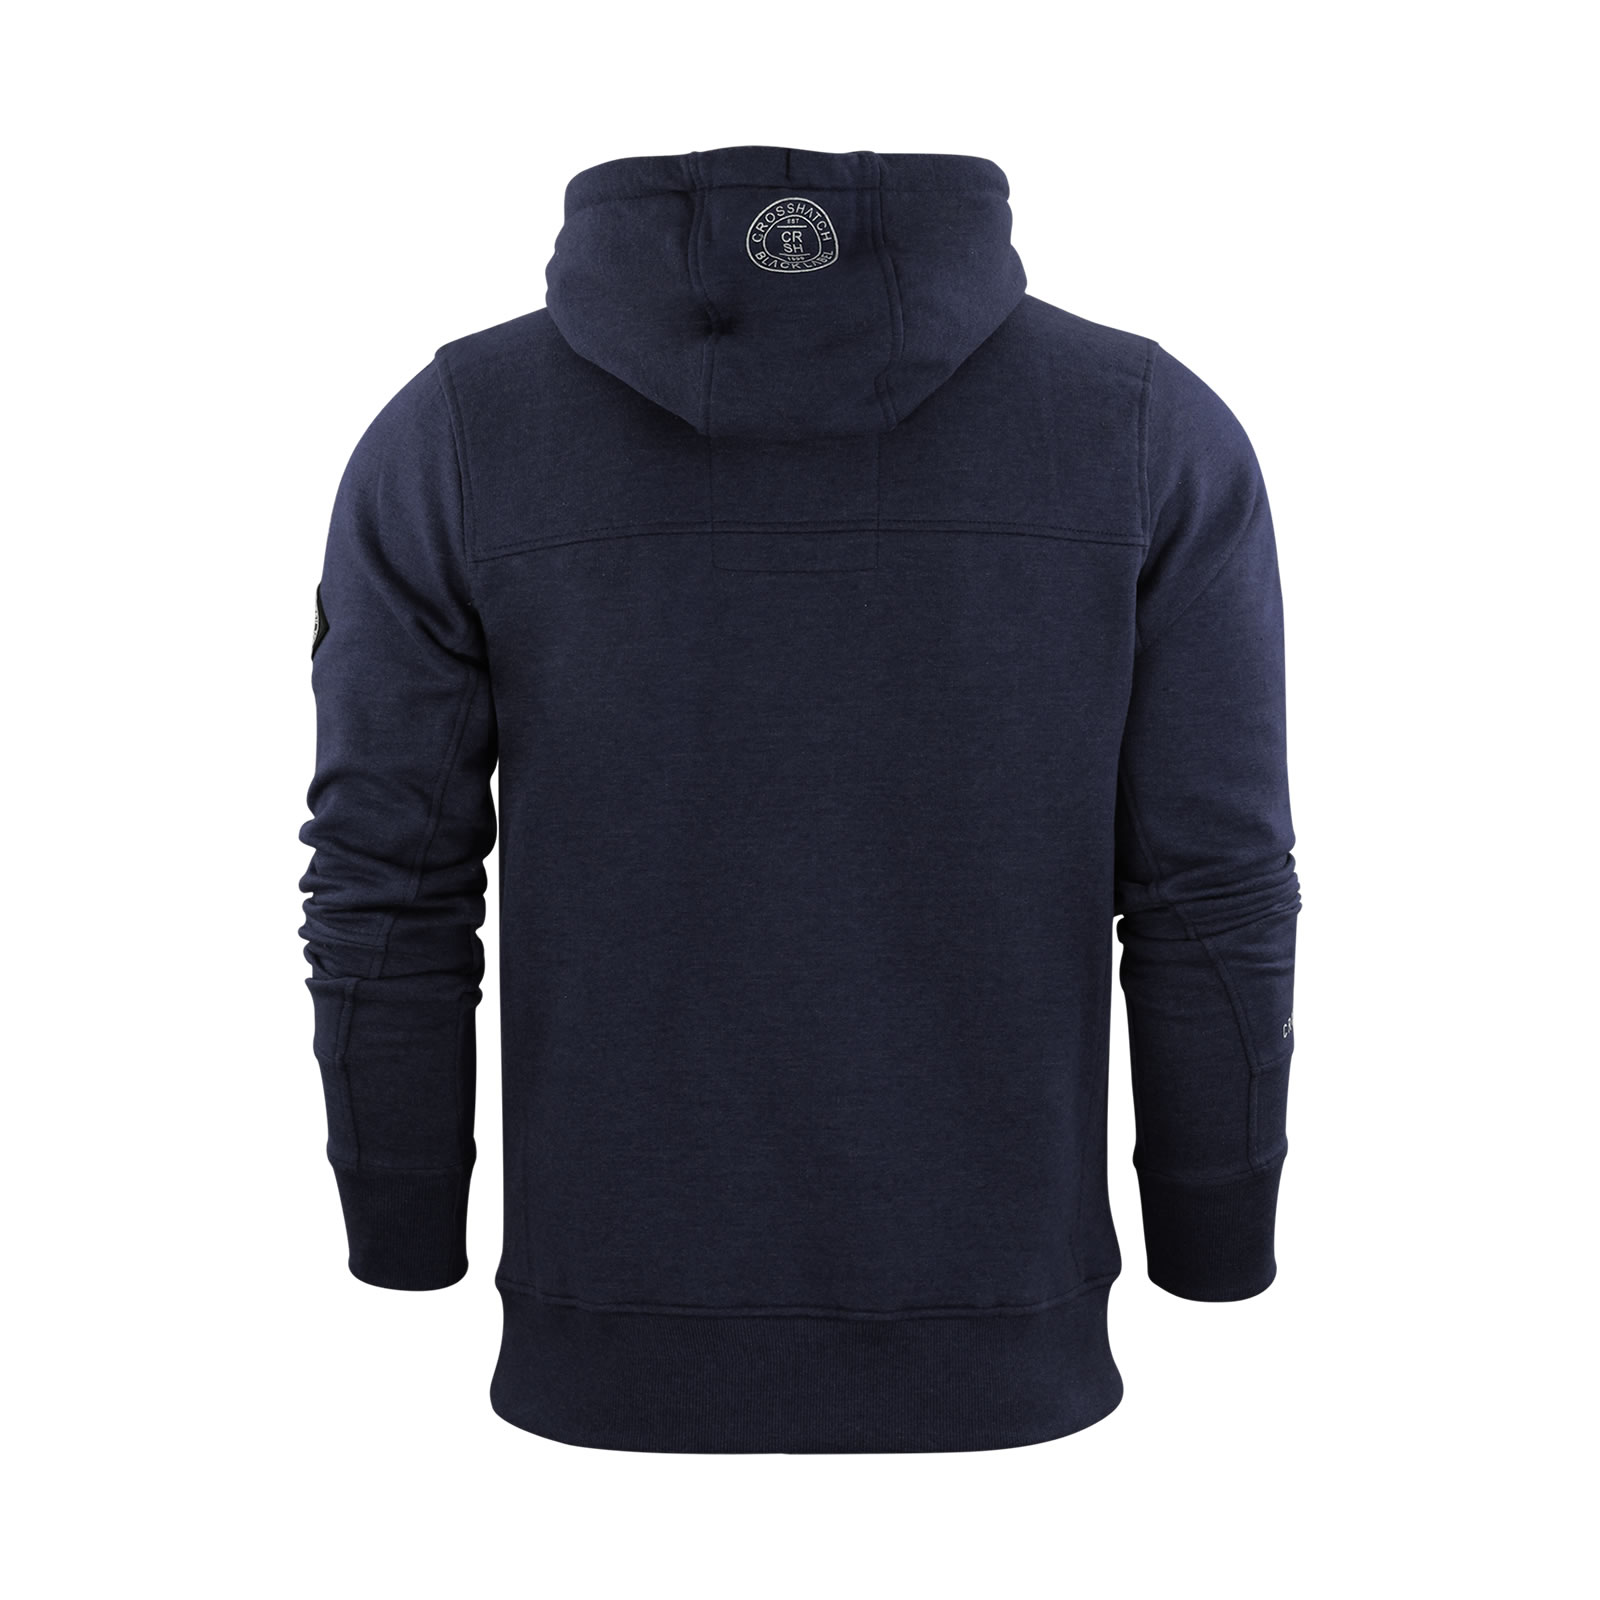 Mens Hoodie Crosshatch Sloten Printed Hooded Pull Over Sweatshirt